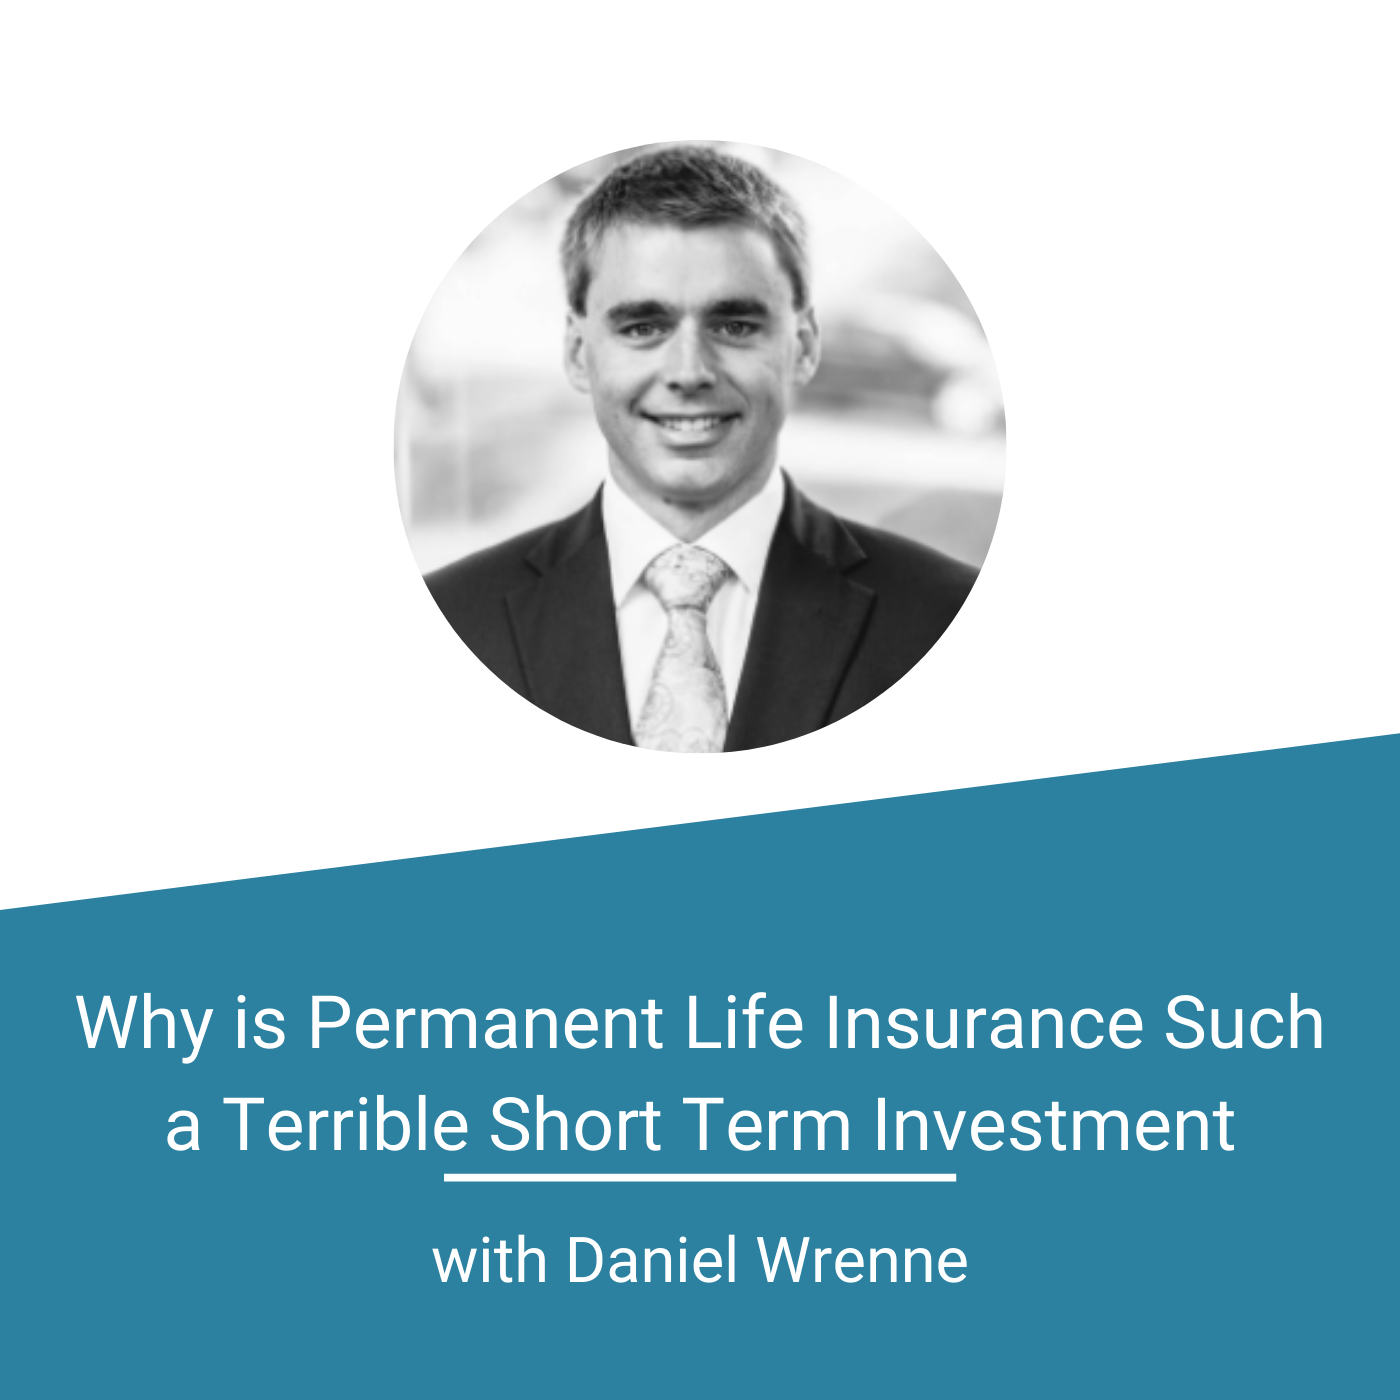 Featured Image - Why is Permanent Life Insurance Such a Terrible Short Term Investment